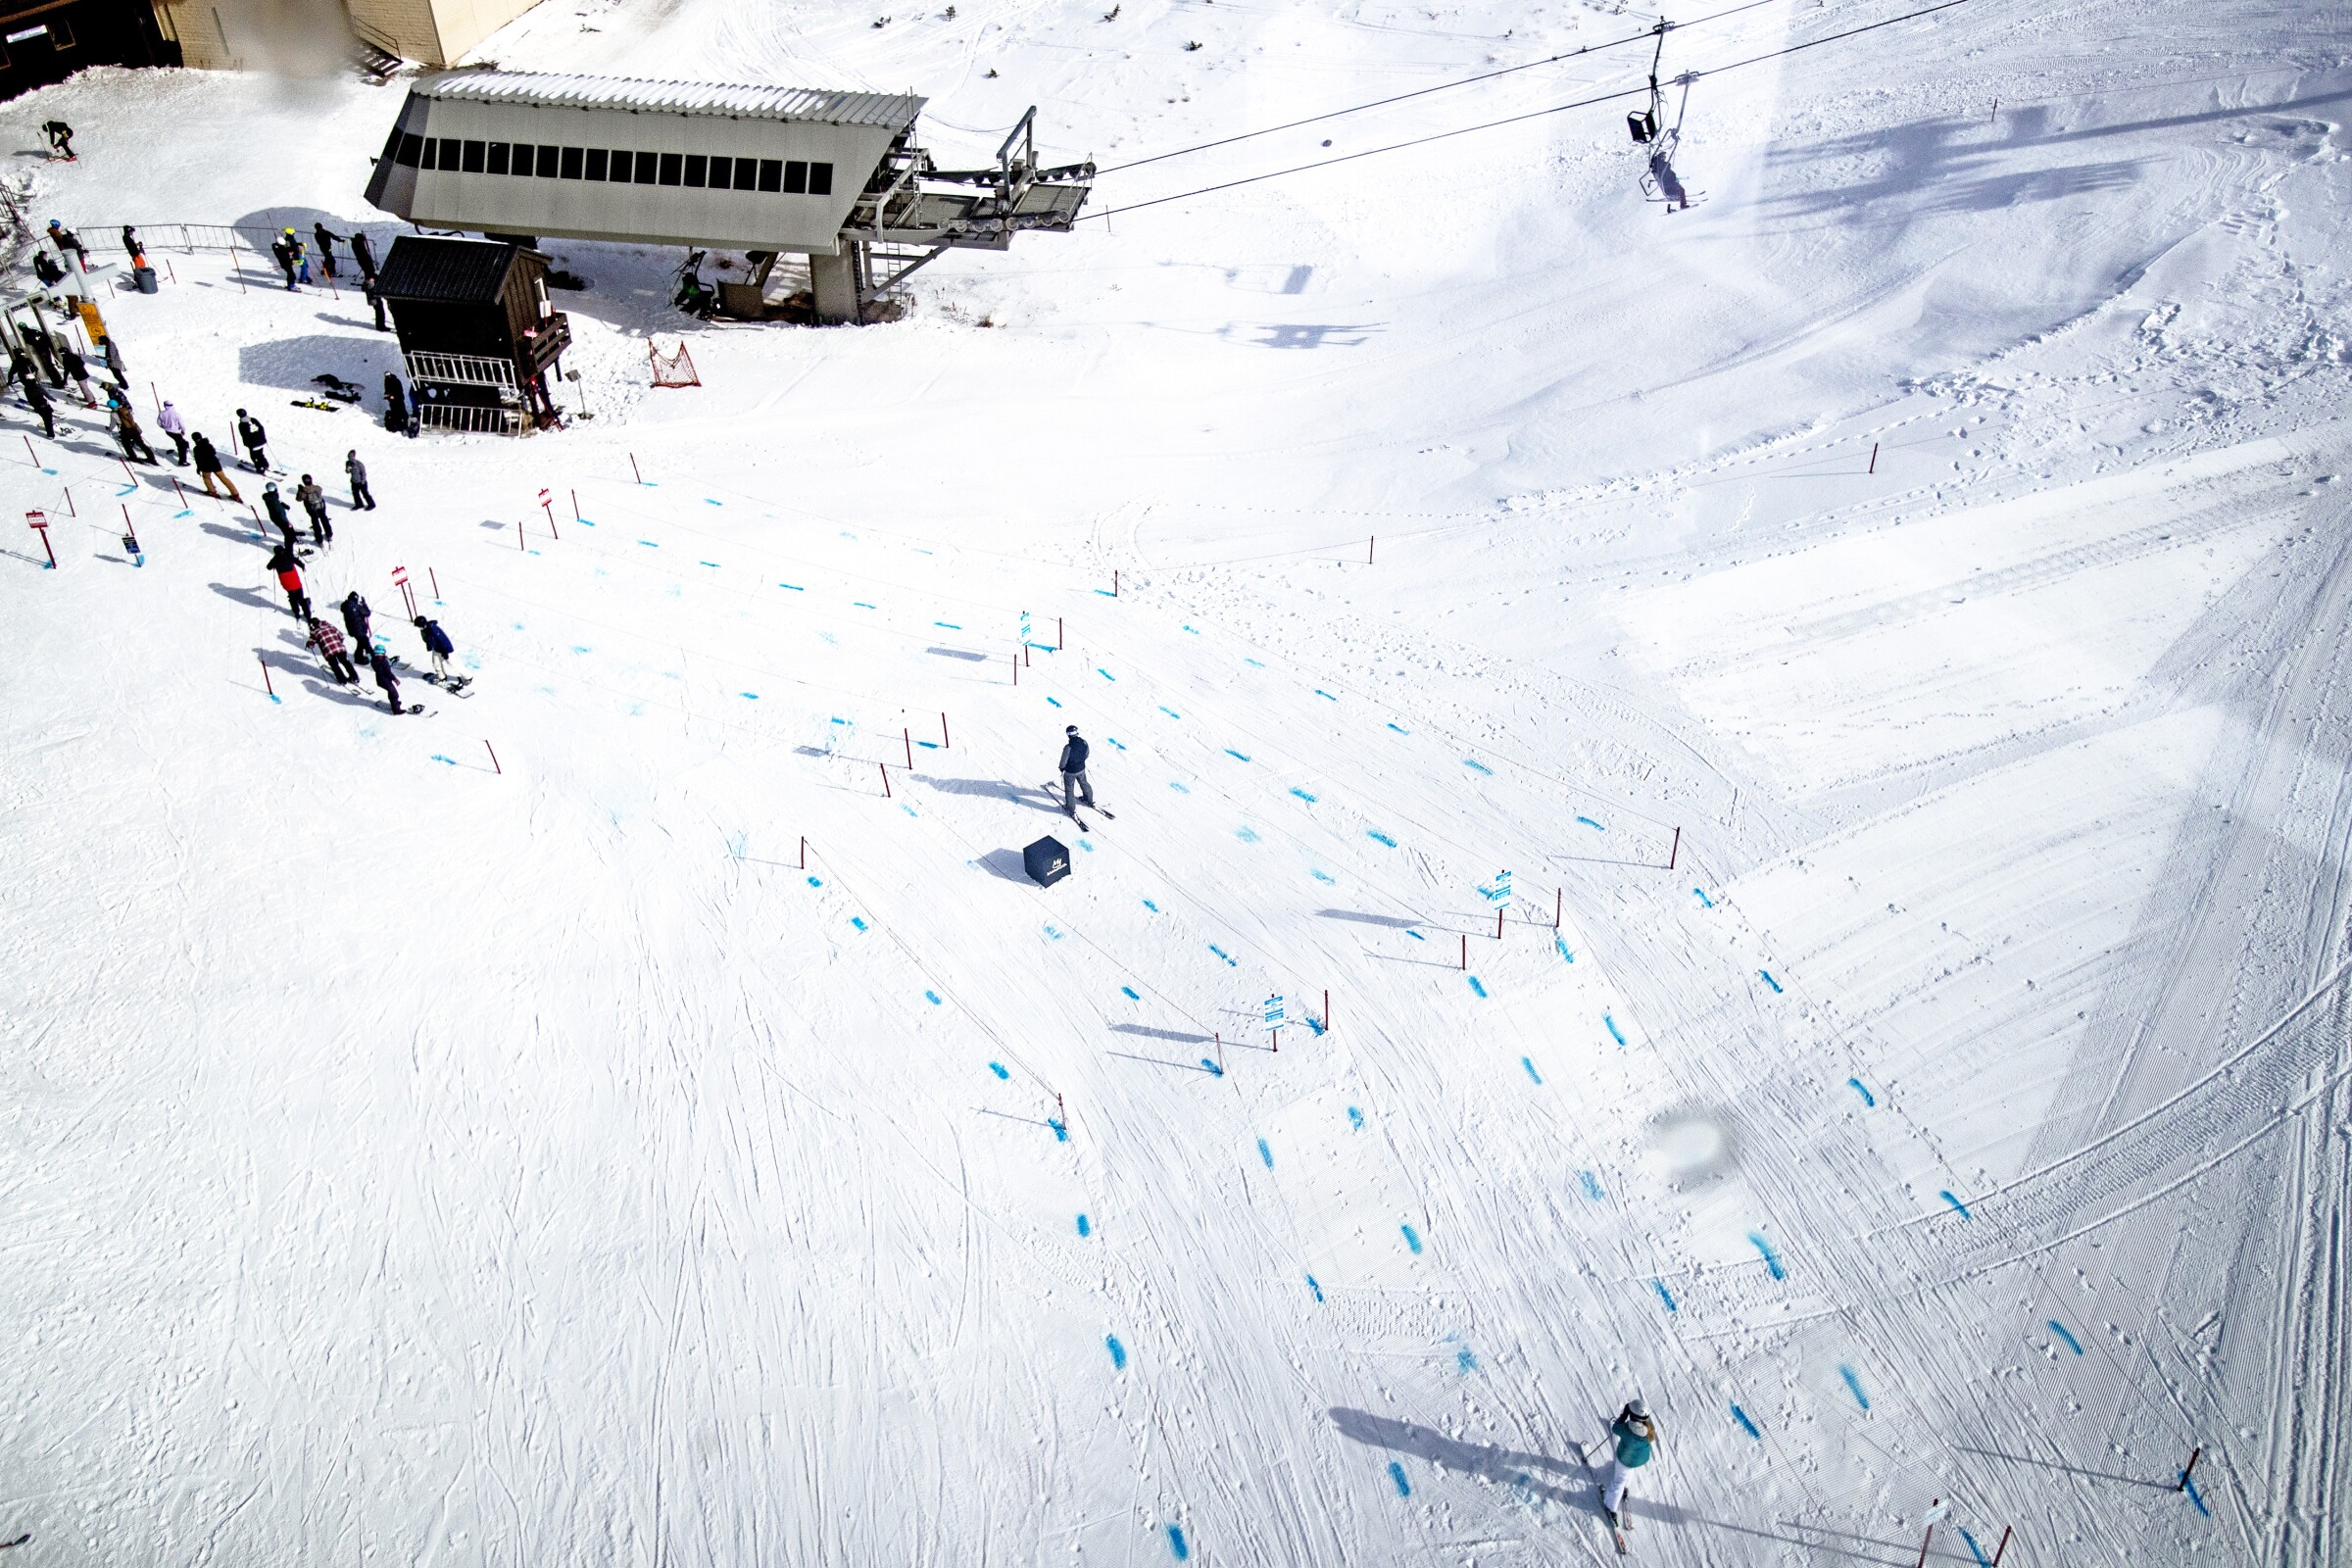 Blue dye in the snow at Mammoth Mountain marks physical distancing.